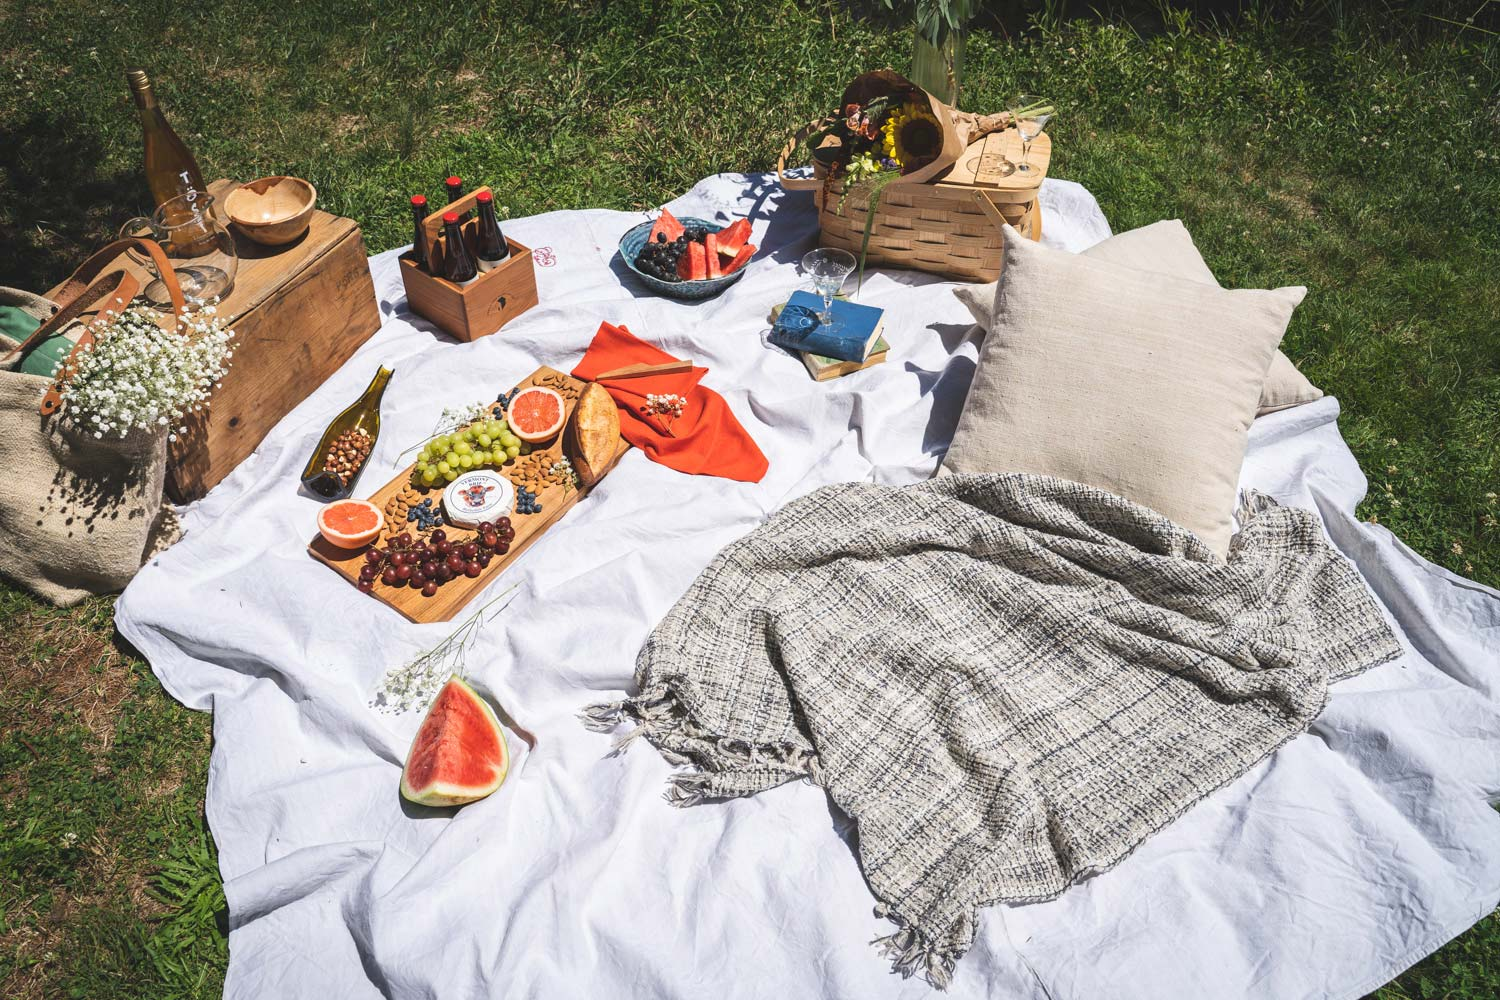 Summer picnic spread